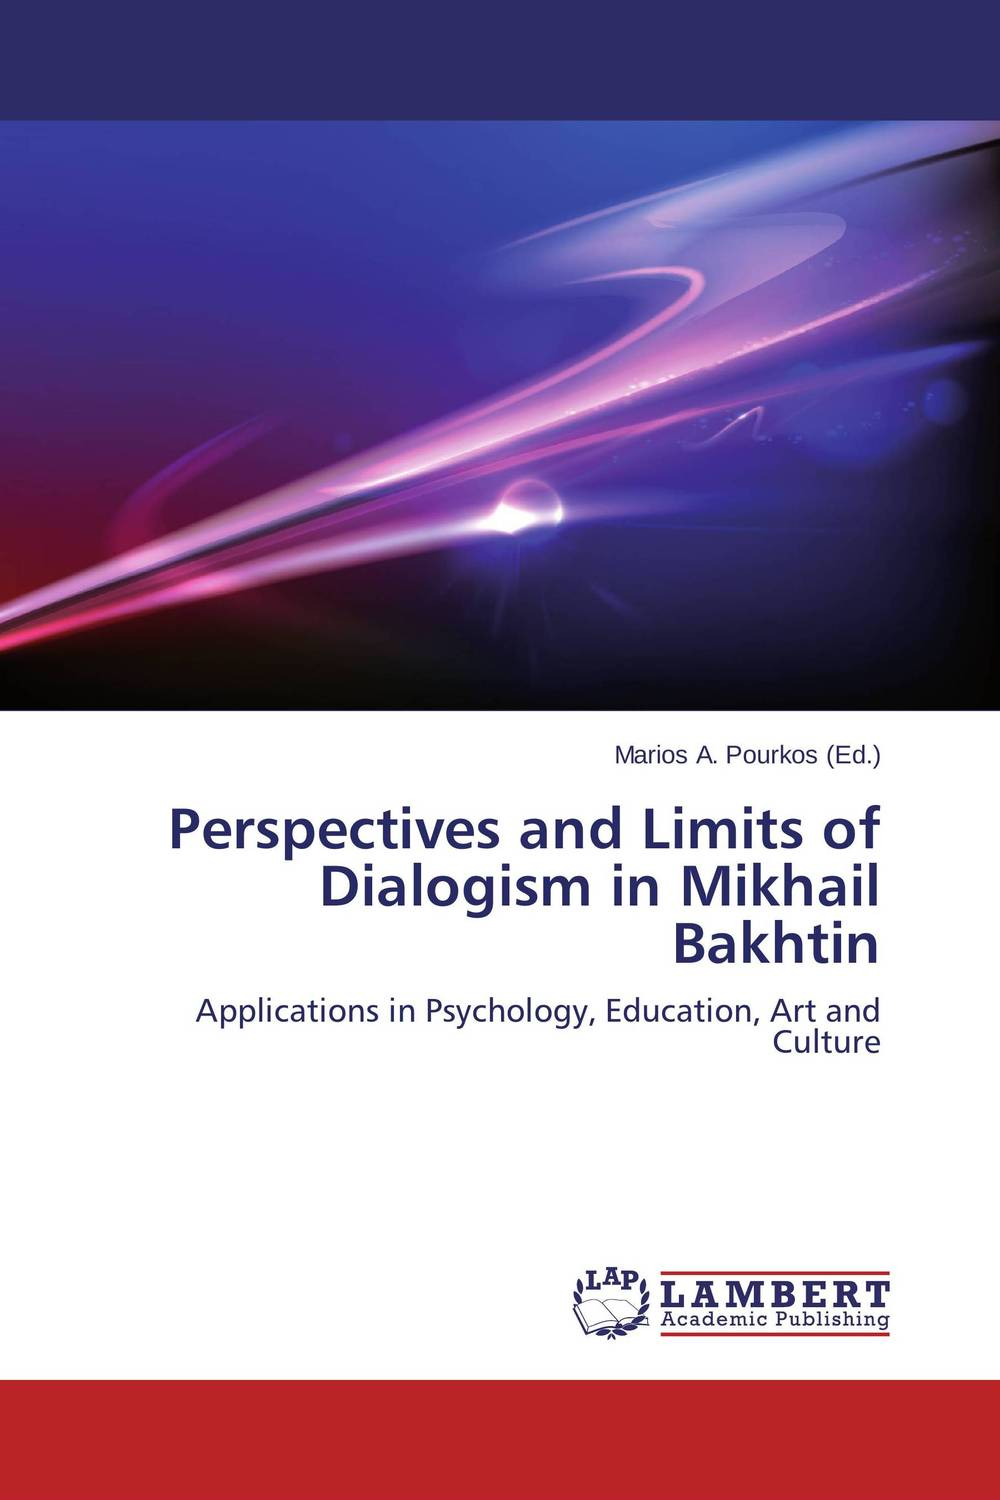 Perspectives and Limits of Dialogism in Mikhail Bakhtin religious education in comparative perspectives